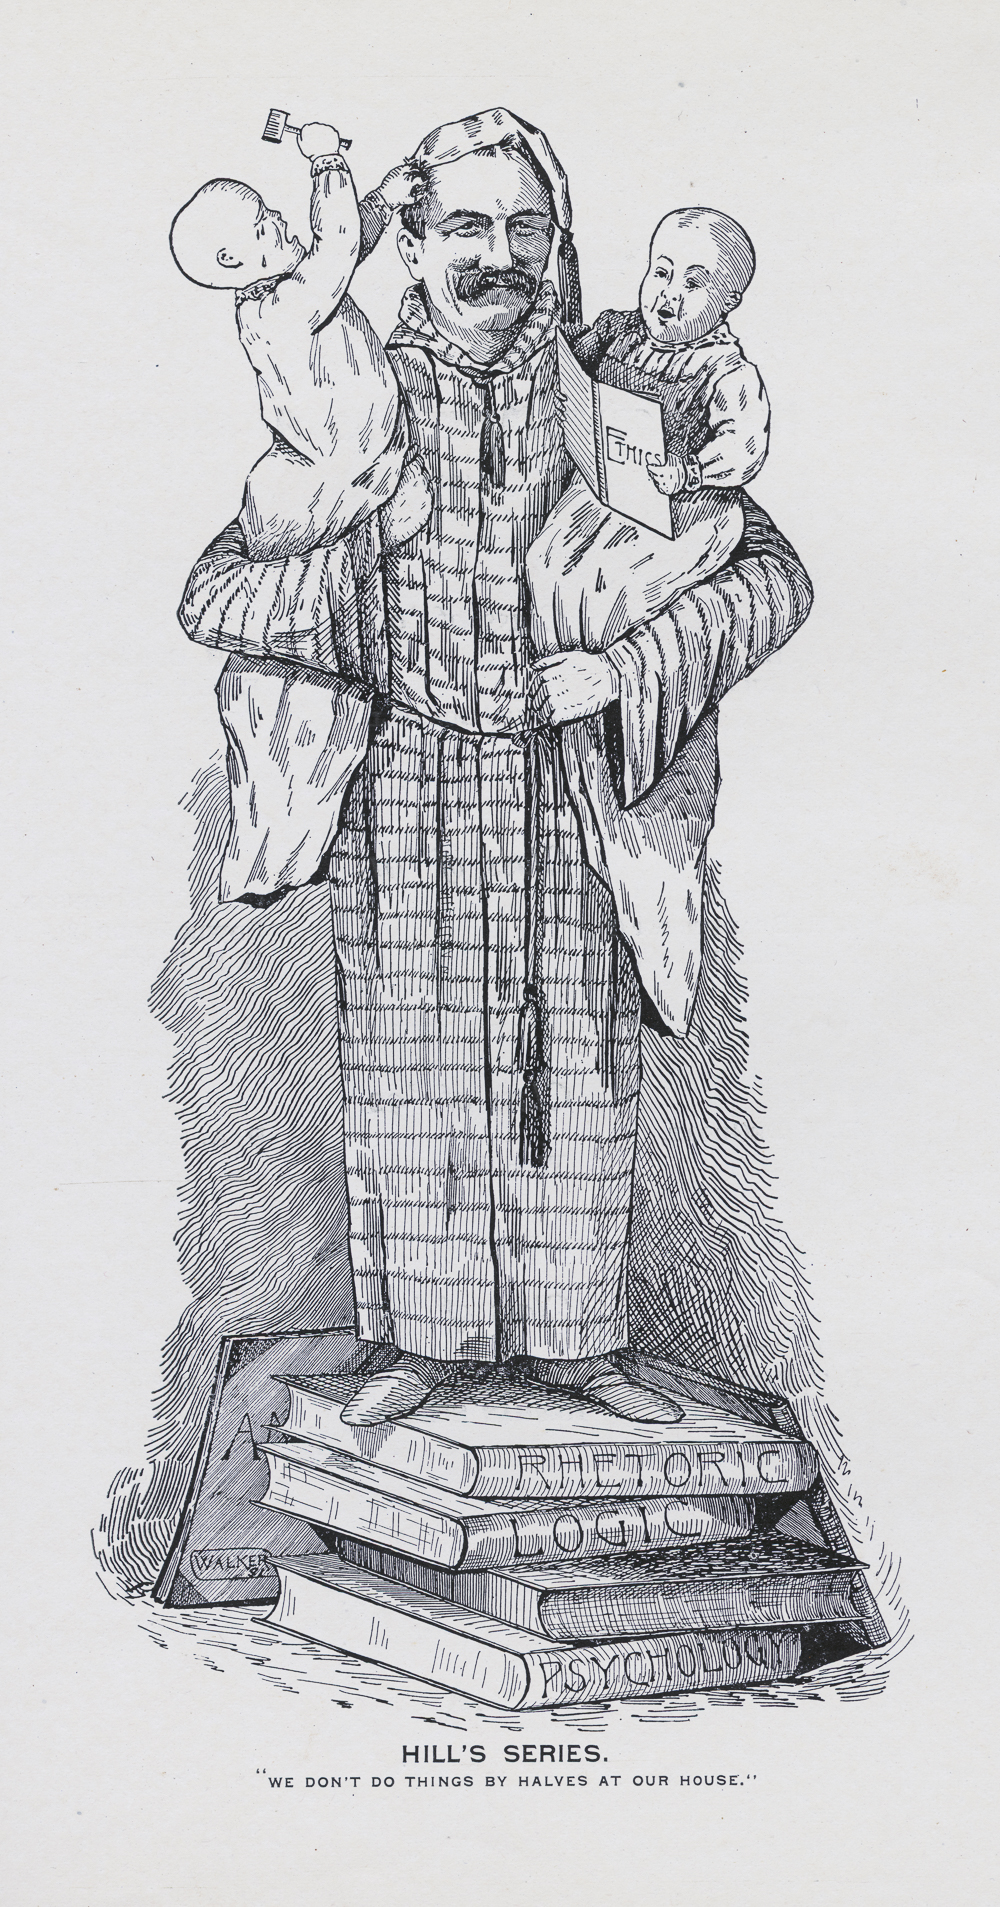 Caricature of Hill and his twins